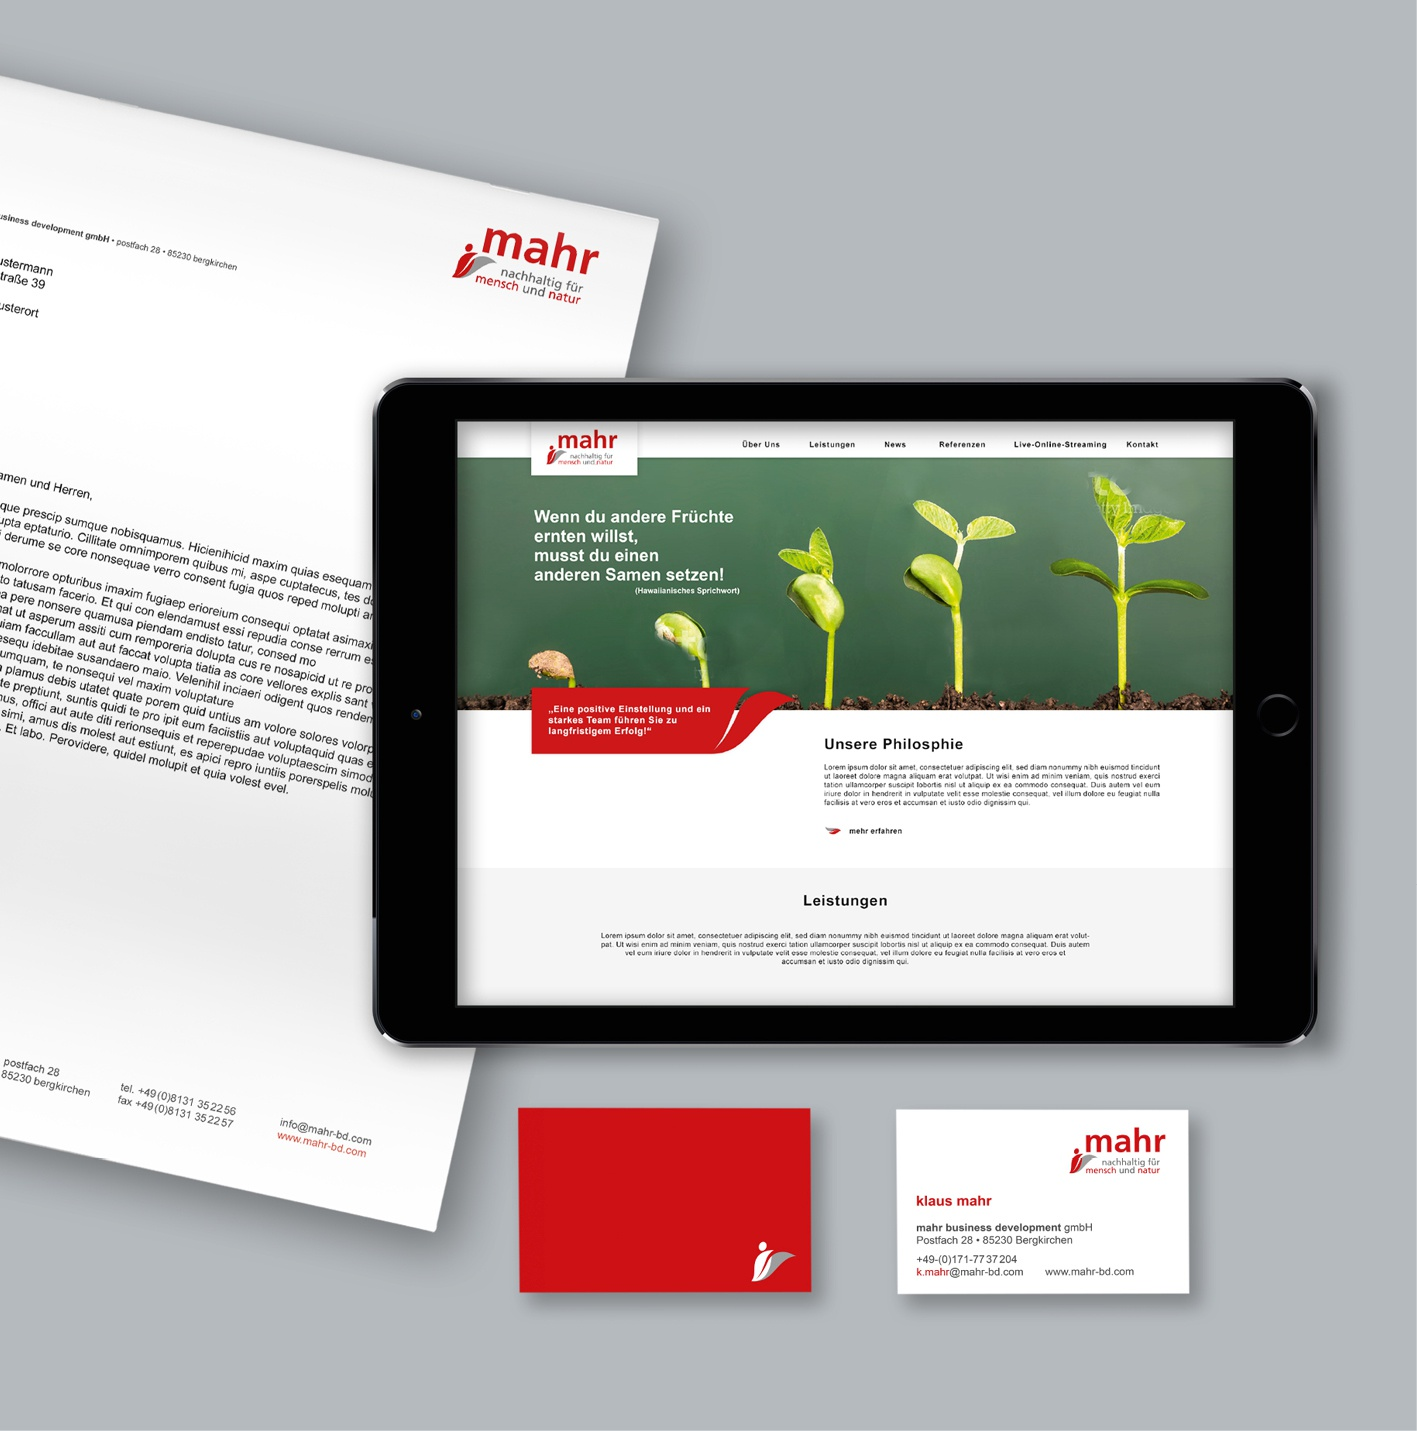 mahr business development GmbH – Coroprate Design: mahr business developement – Corporate Design, Redesign Logo, Geschäftsausstattung inkl. Wordvorlagen, Website, Konzept zur Logoverwendung und Give aways